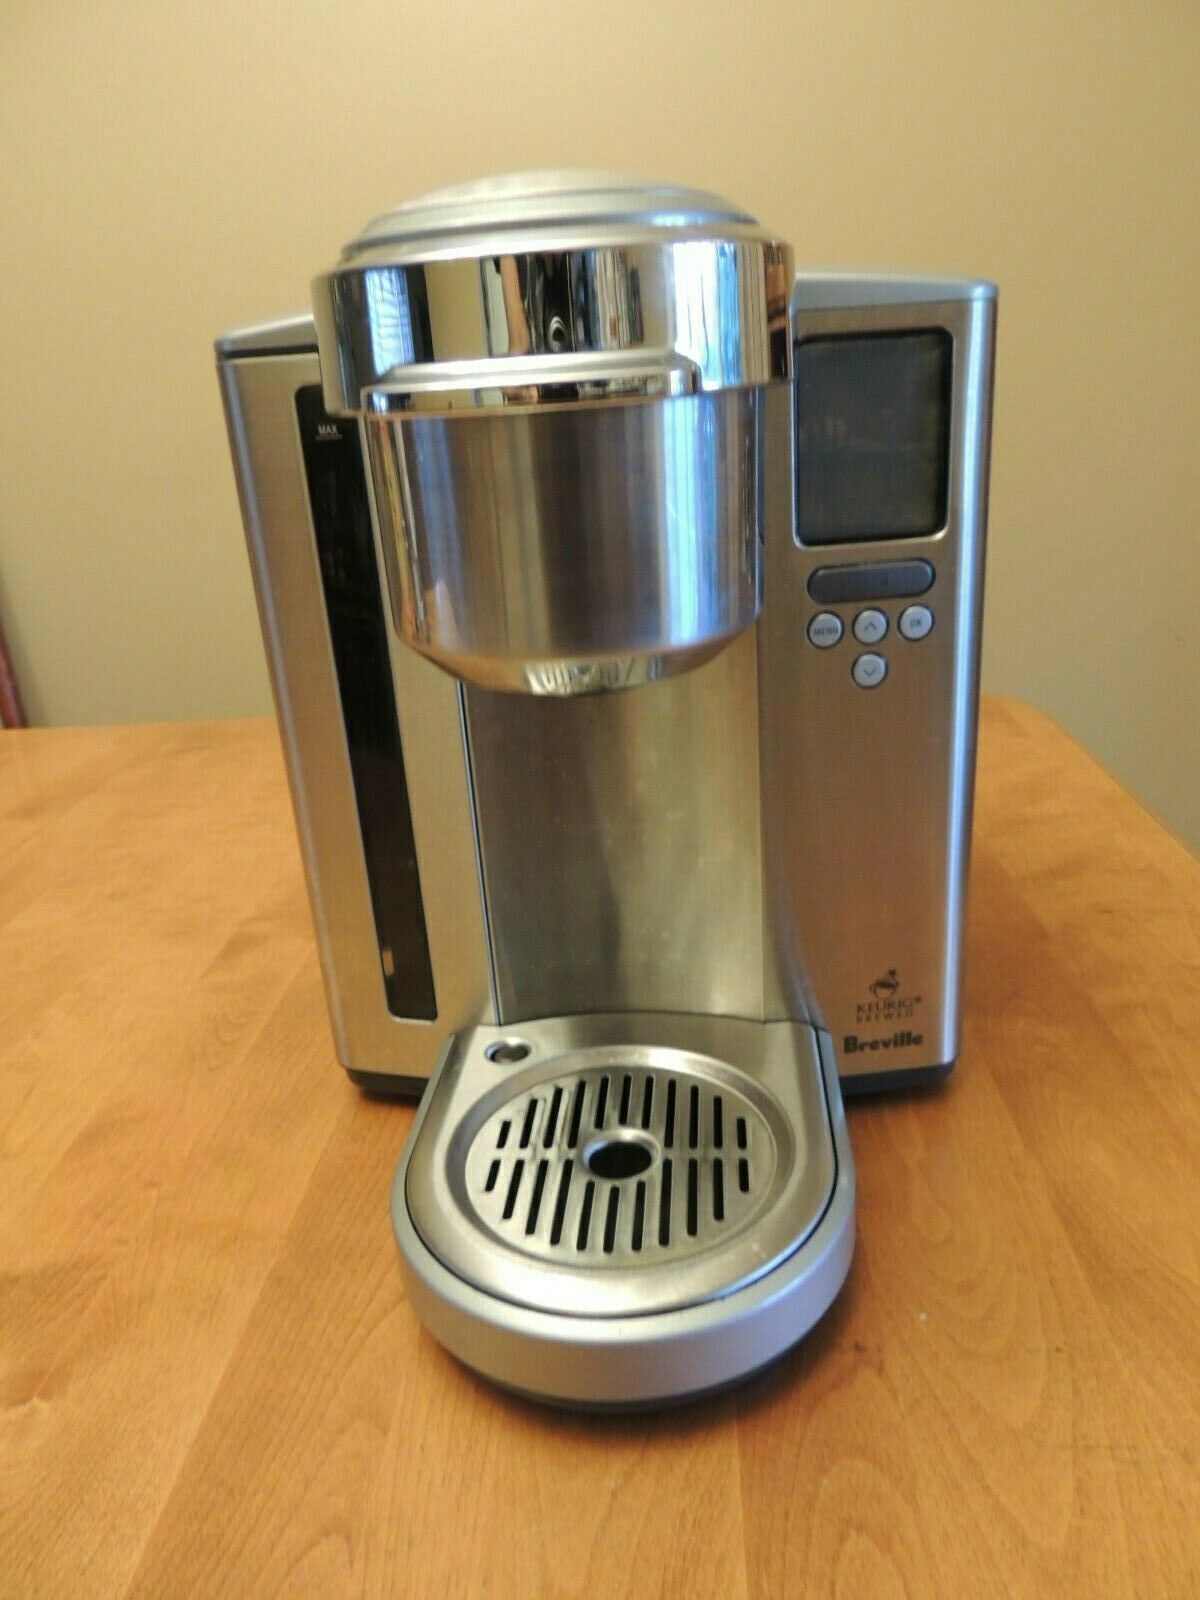 Breville BKC 700 XL Stainless Steel Gourmet Keurig K- Cup Coffee Brewer BKC700XL image 2